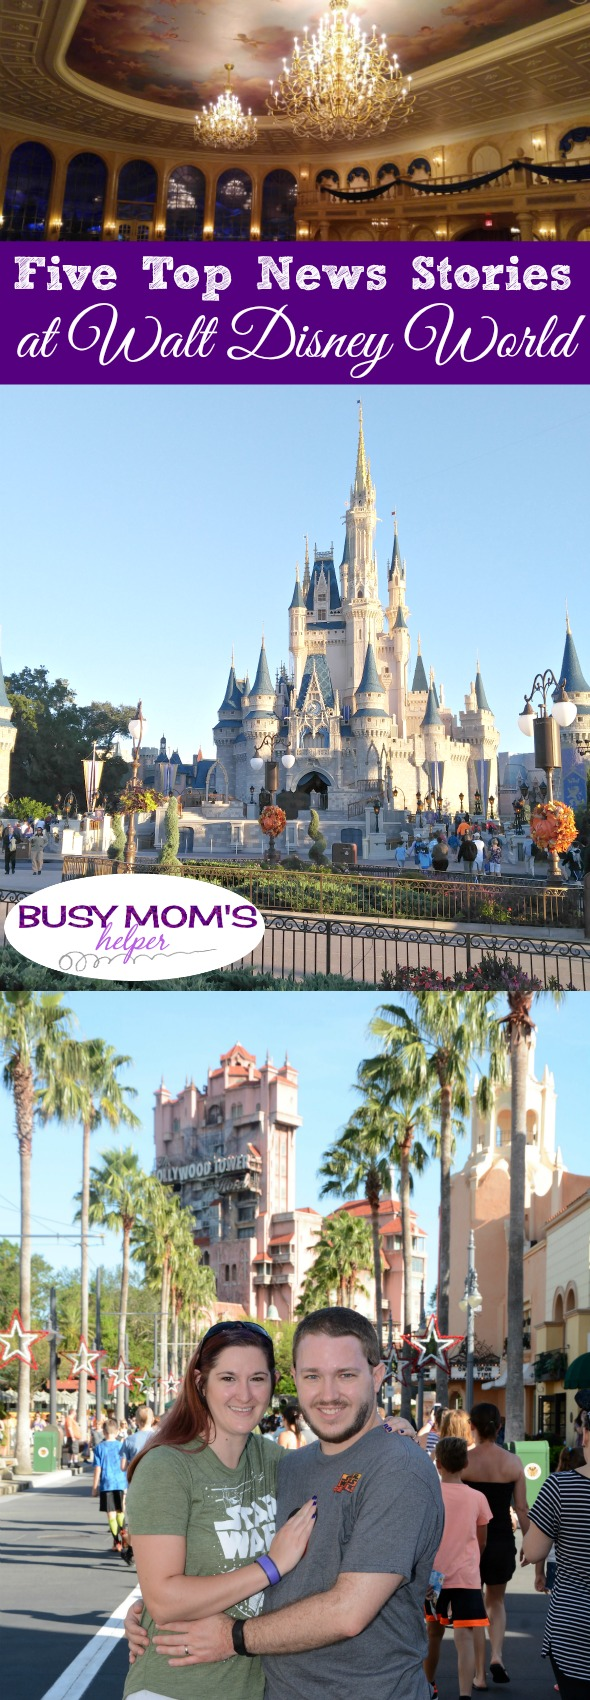 Five Top News Stories at Walt Disney World #travel #waltdisneyworld #disney #orlando